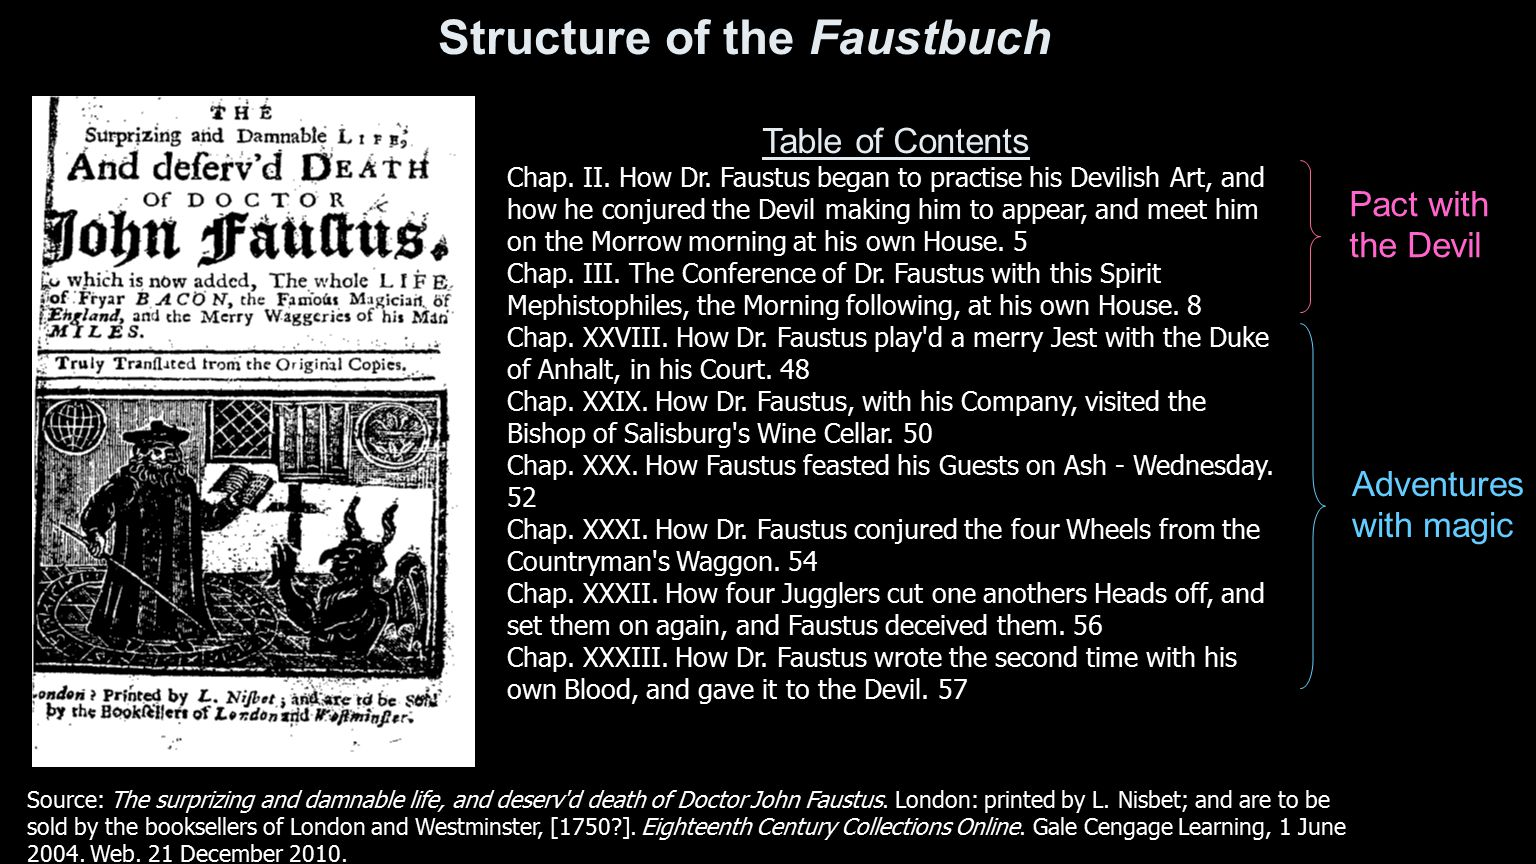 Table of Contents Chap. II. How Dr. Faustus began to practise his Devilish Art, and how he conjured the Devil making him to appear, and meet him on th